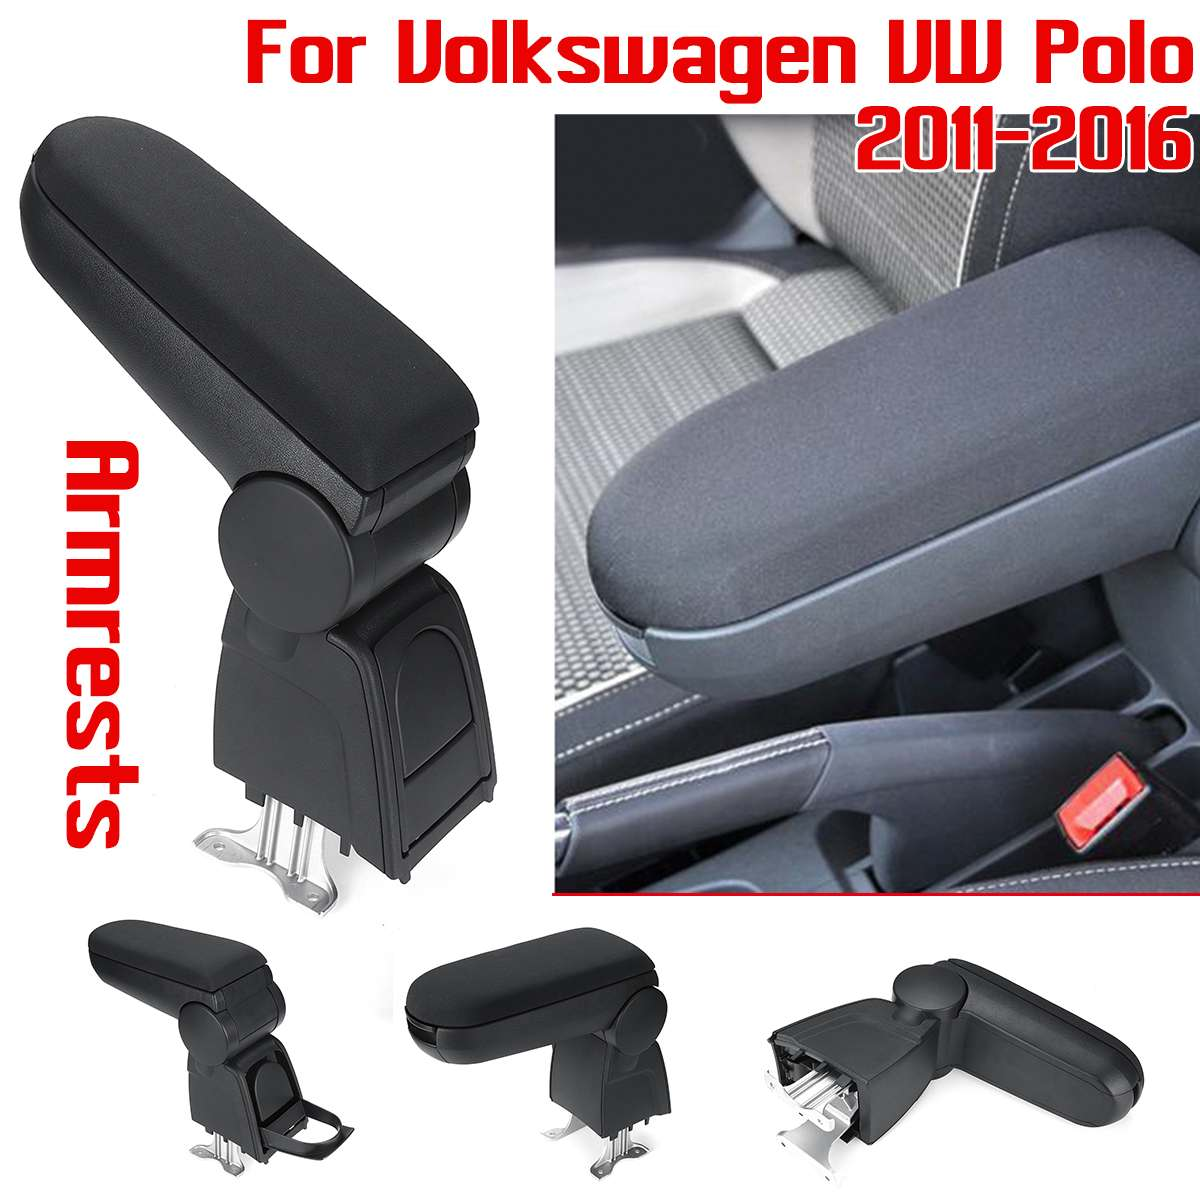 Armrests Box With Cup Holders Woven Fabric Storage Case Console For Volkswagen For VW Polo 2011 2012 2013 2014 2015 2016Armrests Box With Cup Holders Woven Fabric Storage Case Console For Volkswagen For VW Polo 2011 2012 2013 2014 2015 2016